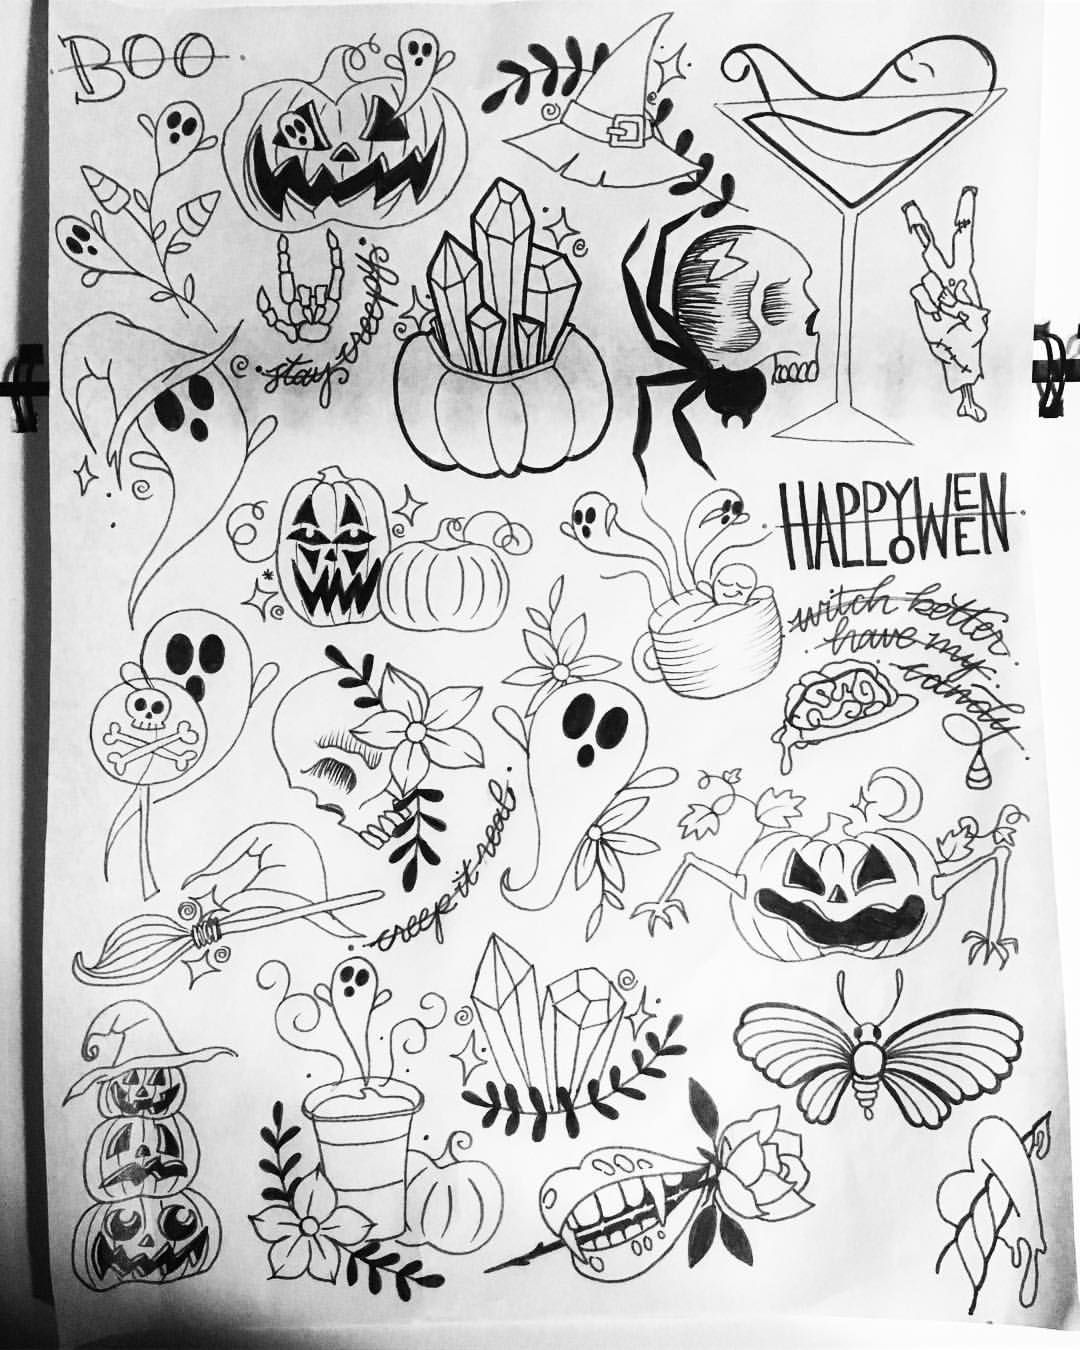 My previous flash sheets and my NEW Halloween flash sheet